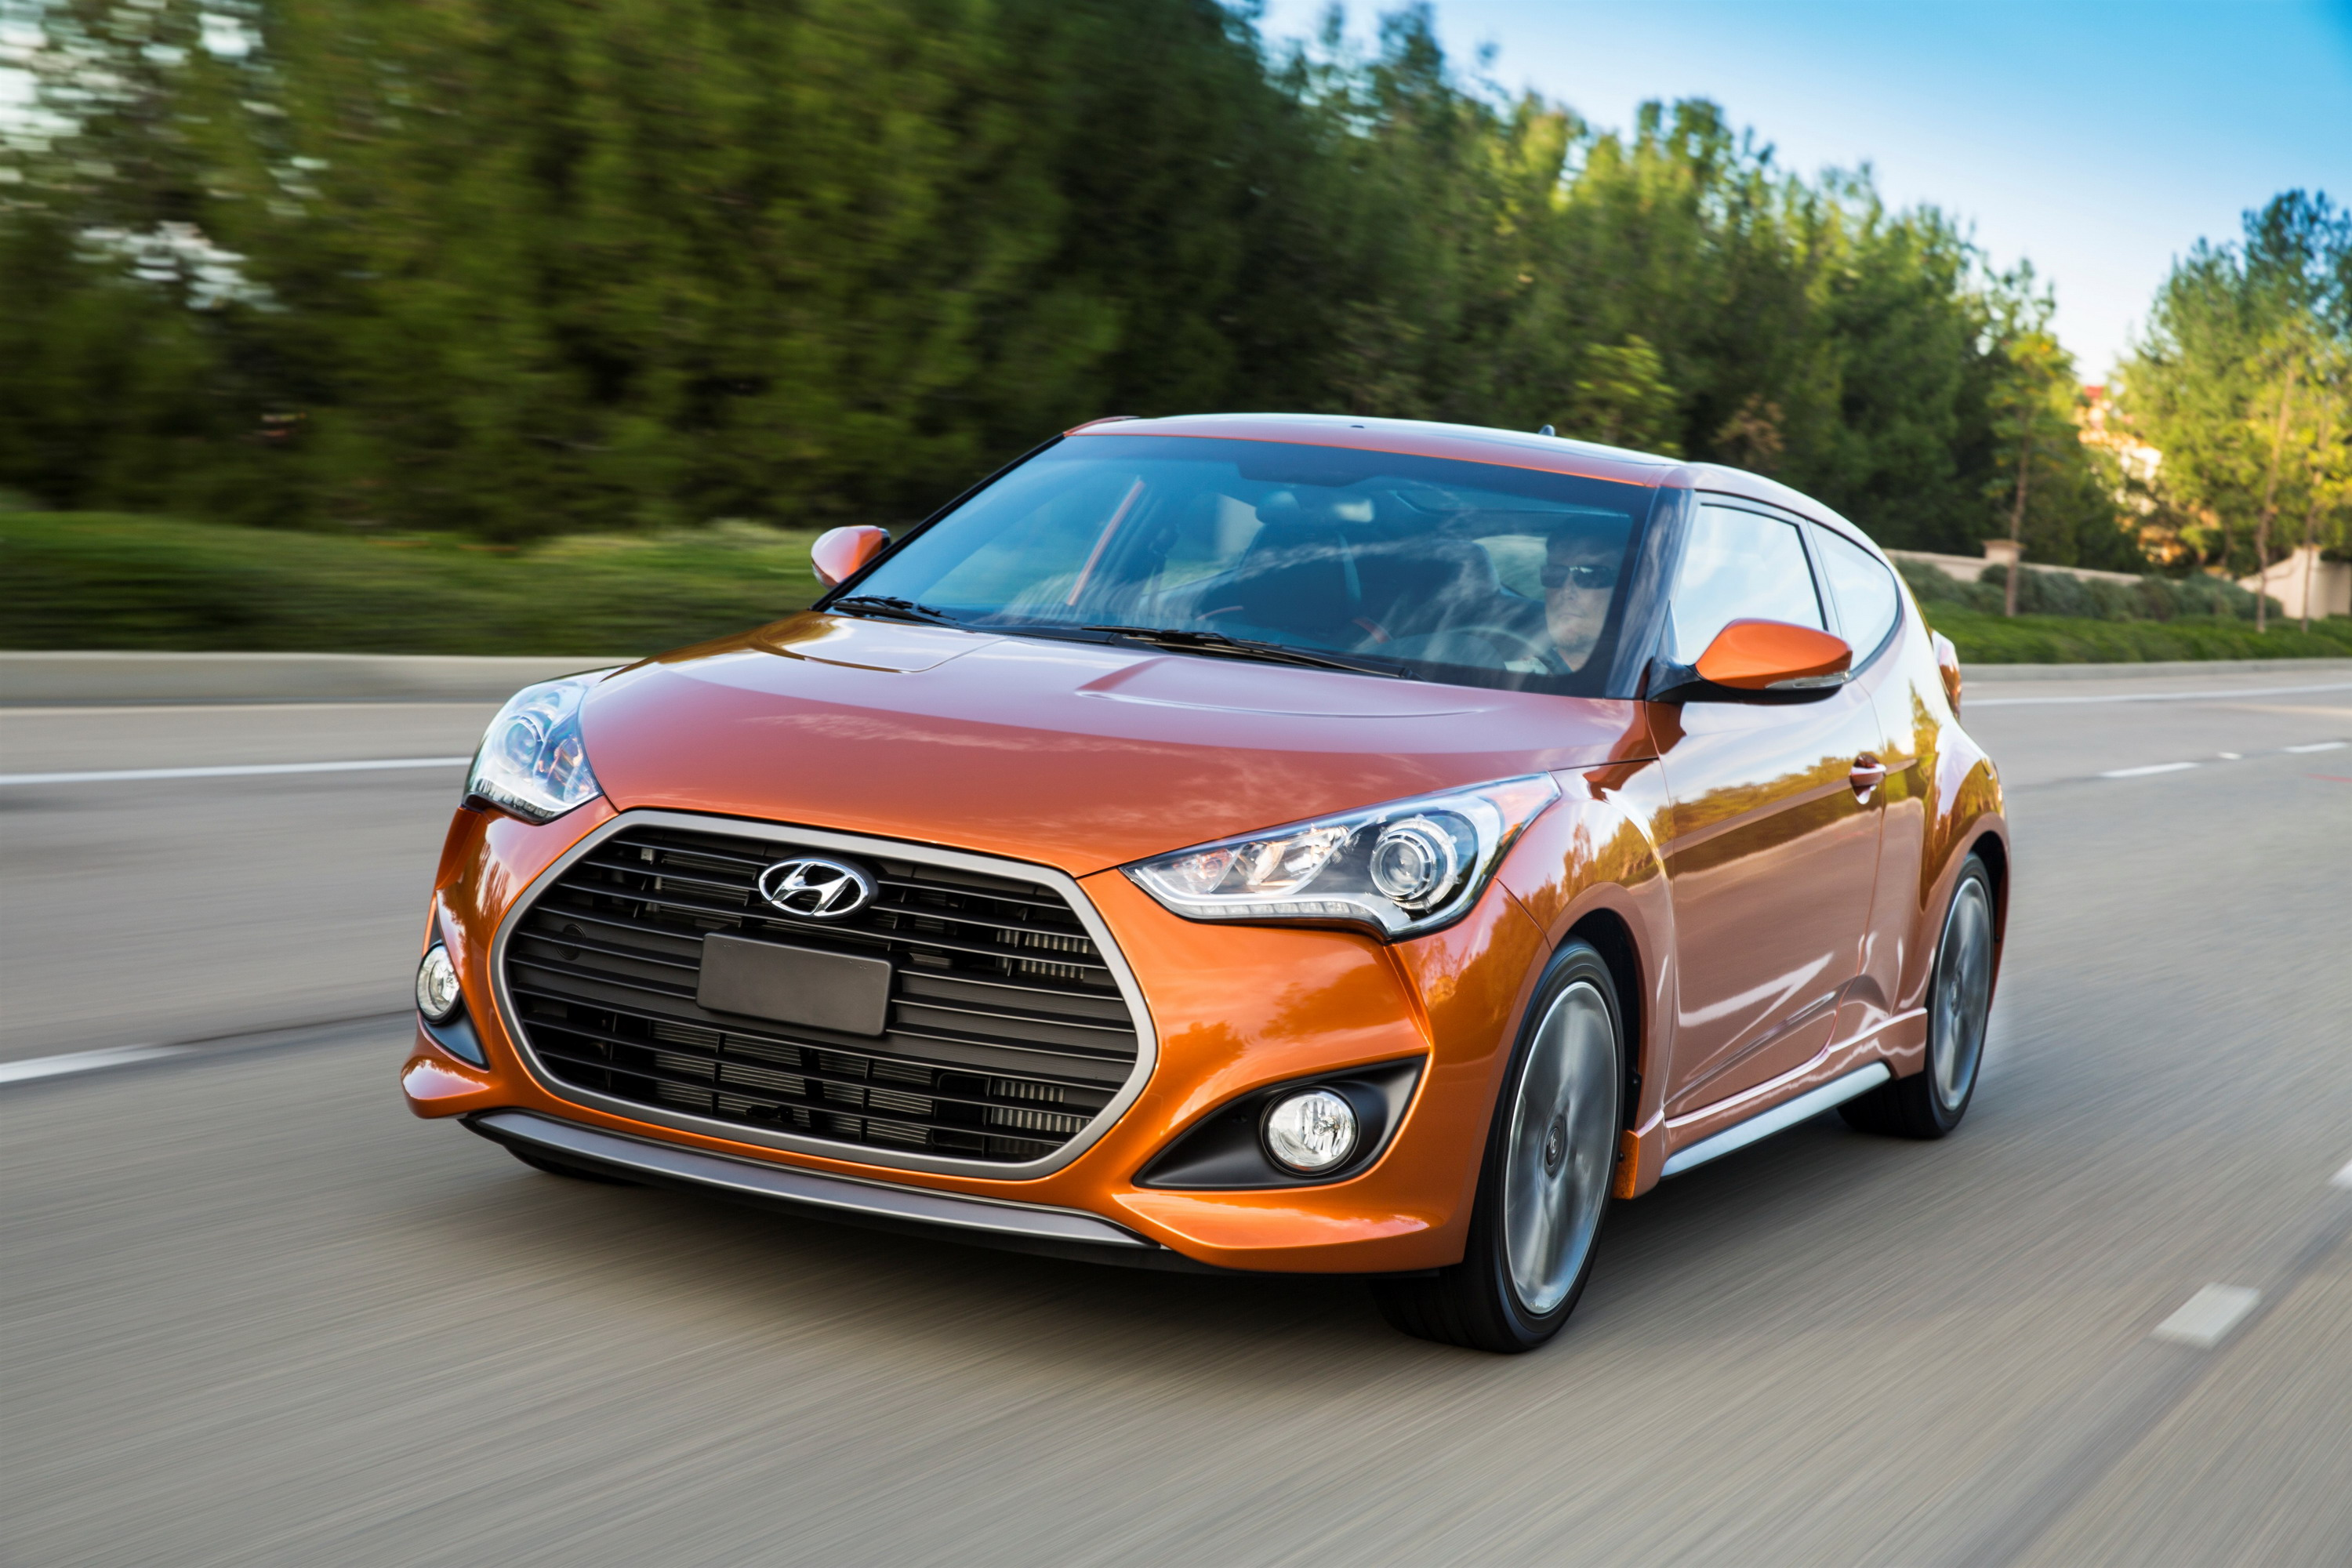 by hyundai btr type turbo r racing veloster blood spec